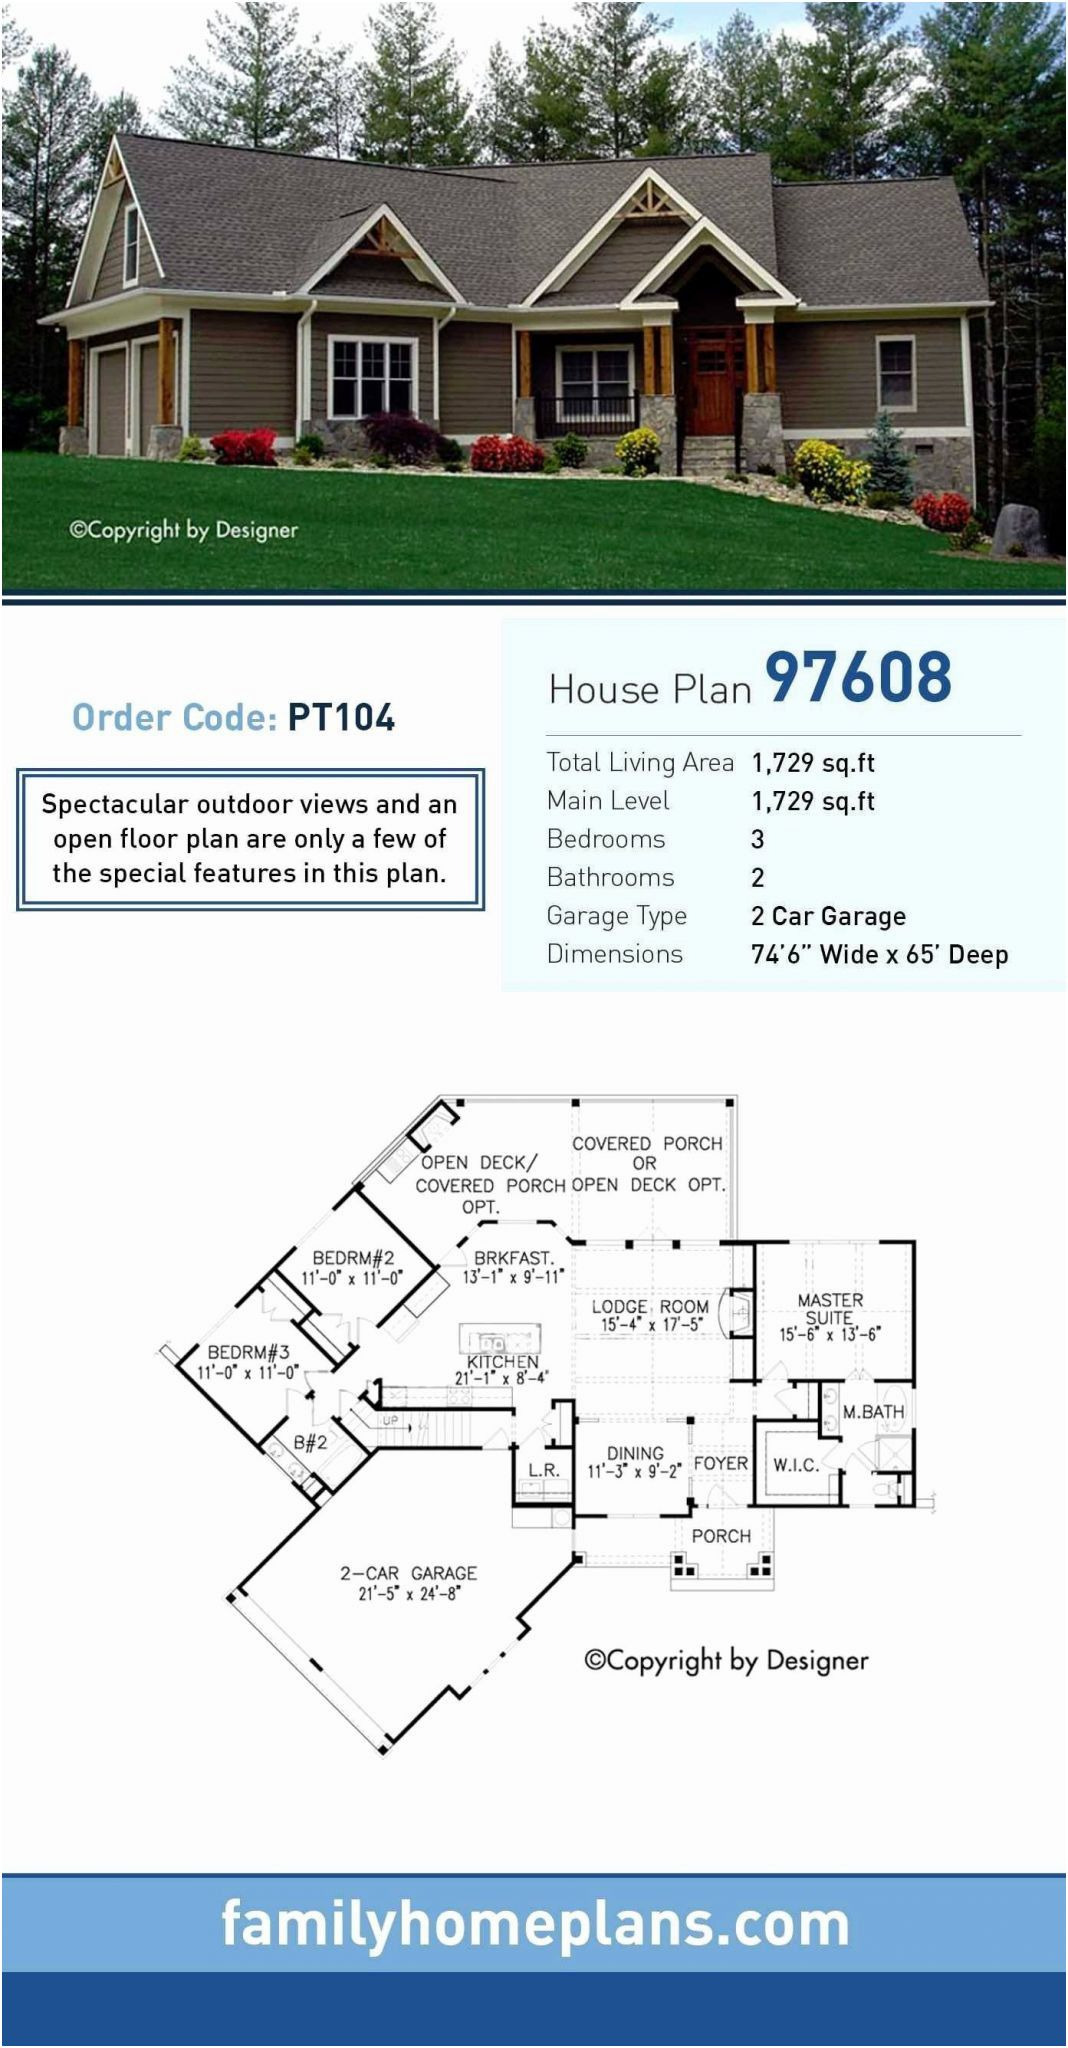 House Construction Plan software Free Download Lovely Free Line House Design Free Line House Design Free